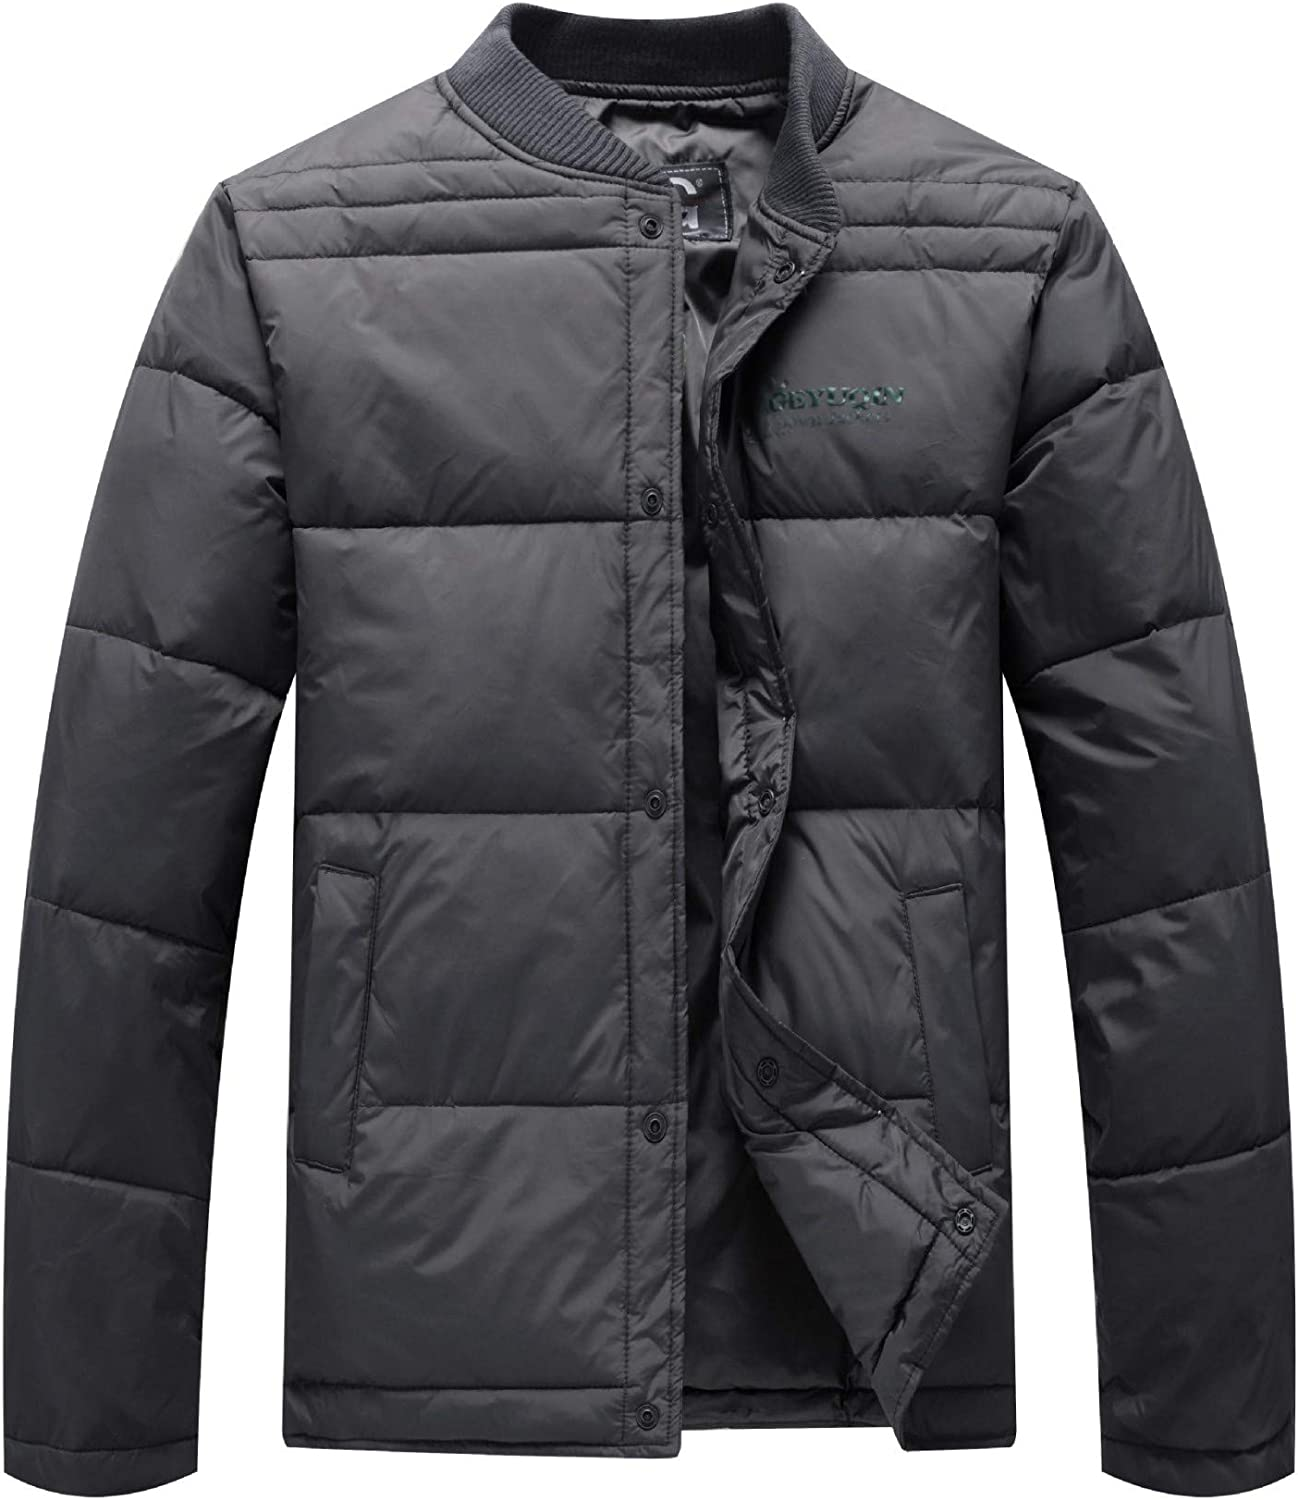 Men's Winter Jacket Ultra Light Polyester Stand Collar Side Pockets Outdoor Sports Winter Down Jackets